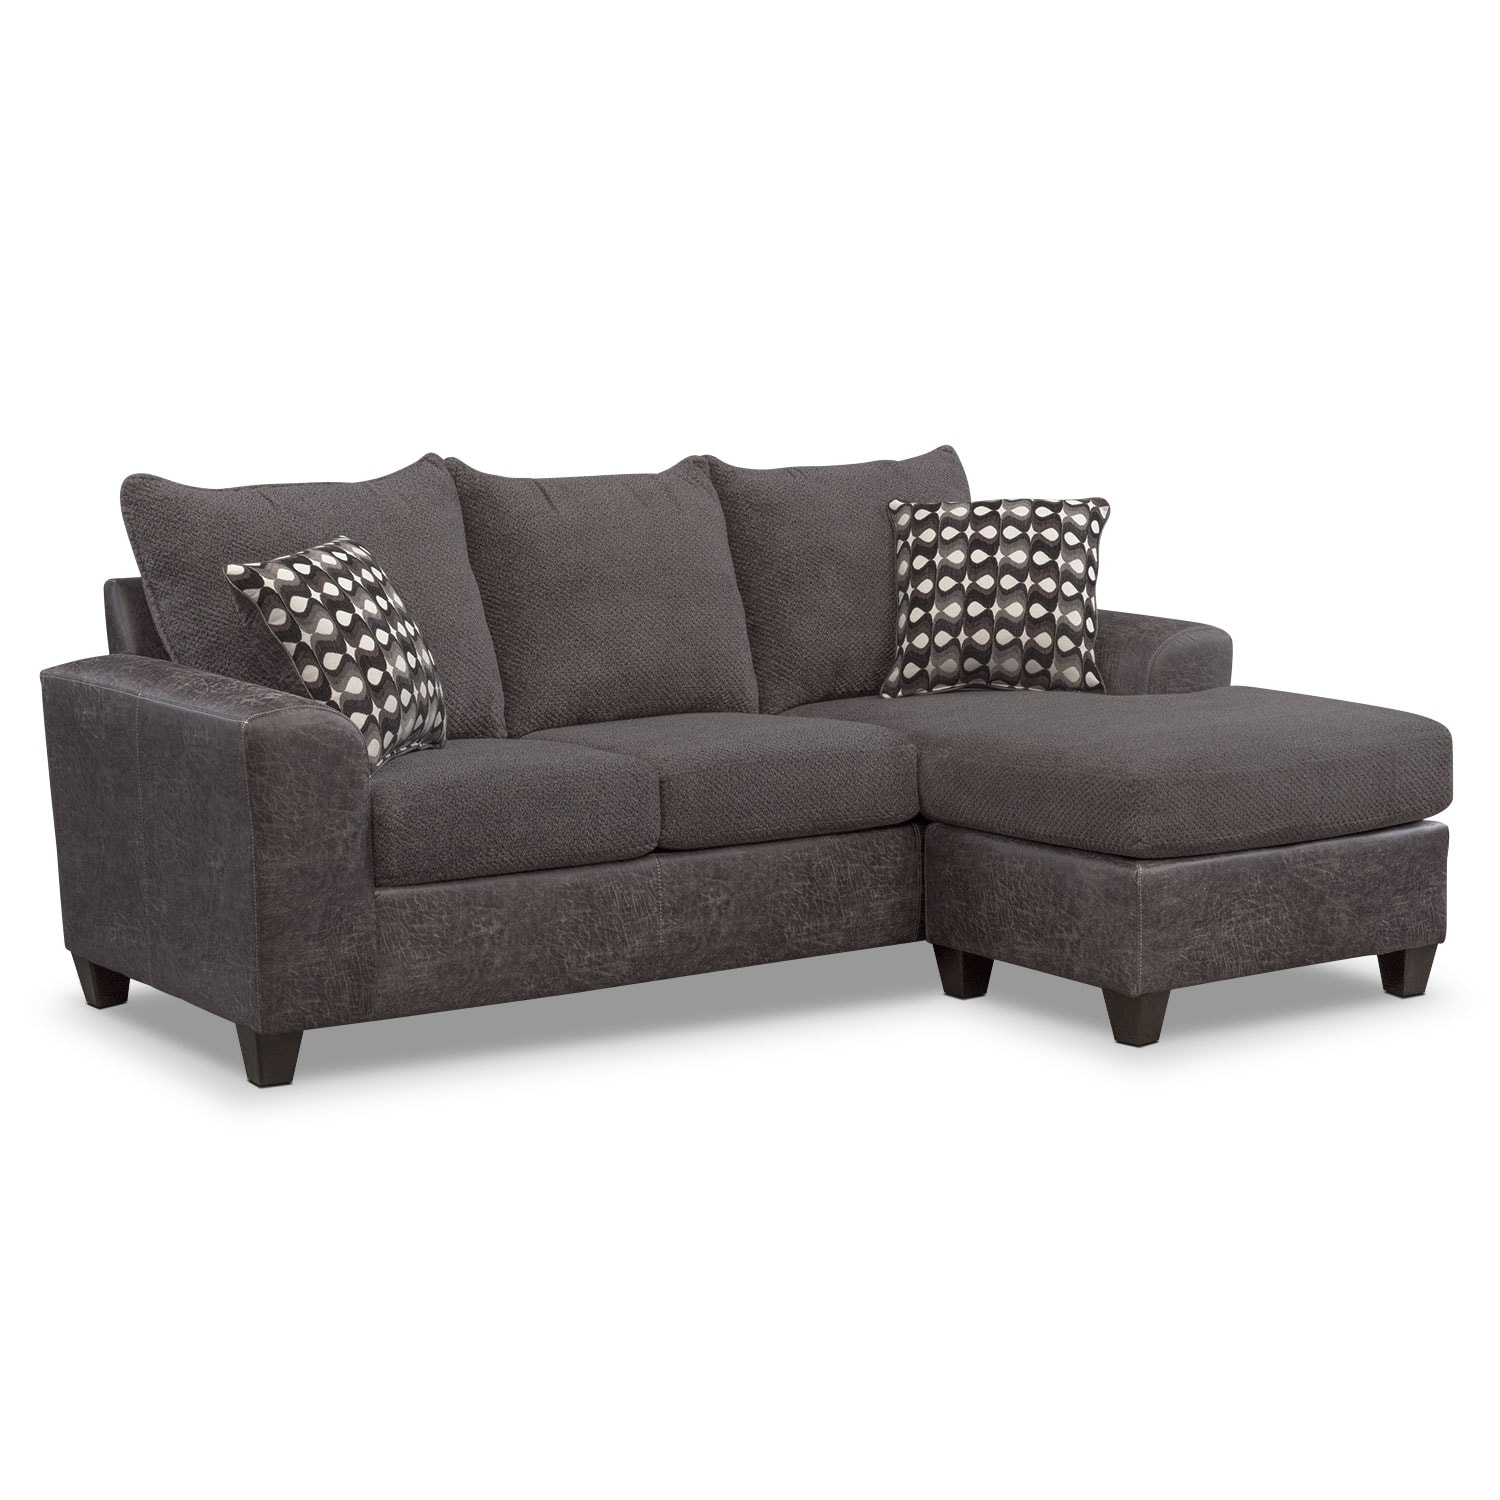 Brando sofa with chaise smoke american signature furniture for I furniture warehouse